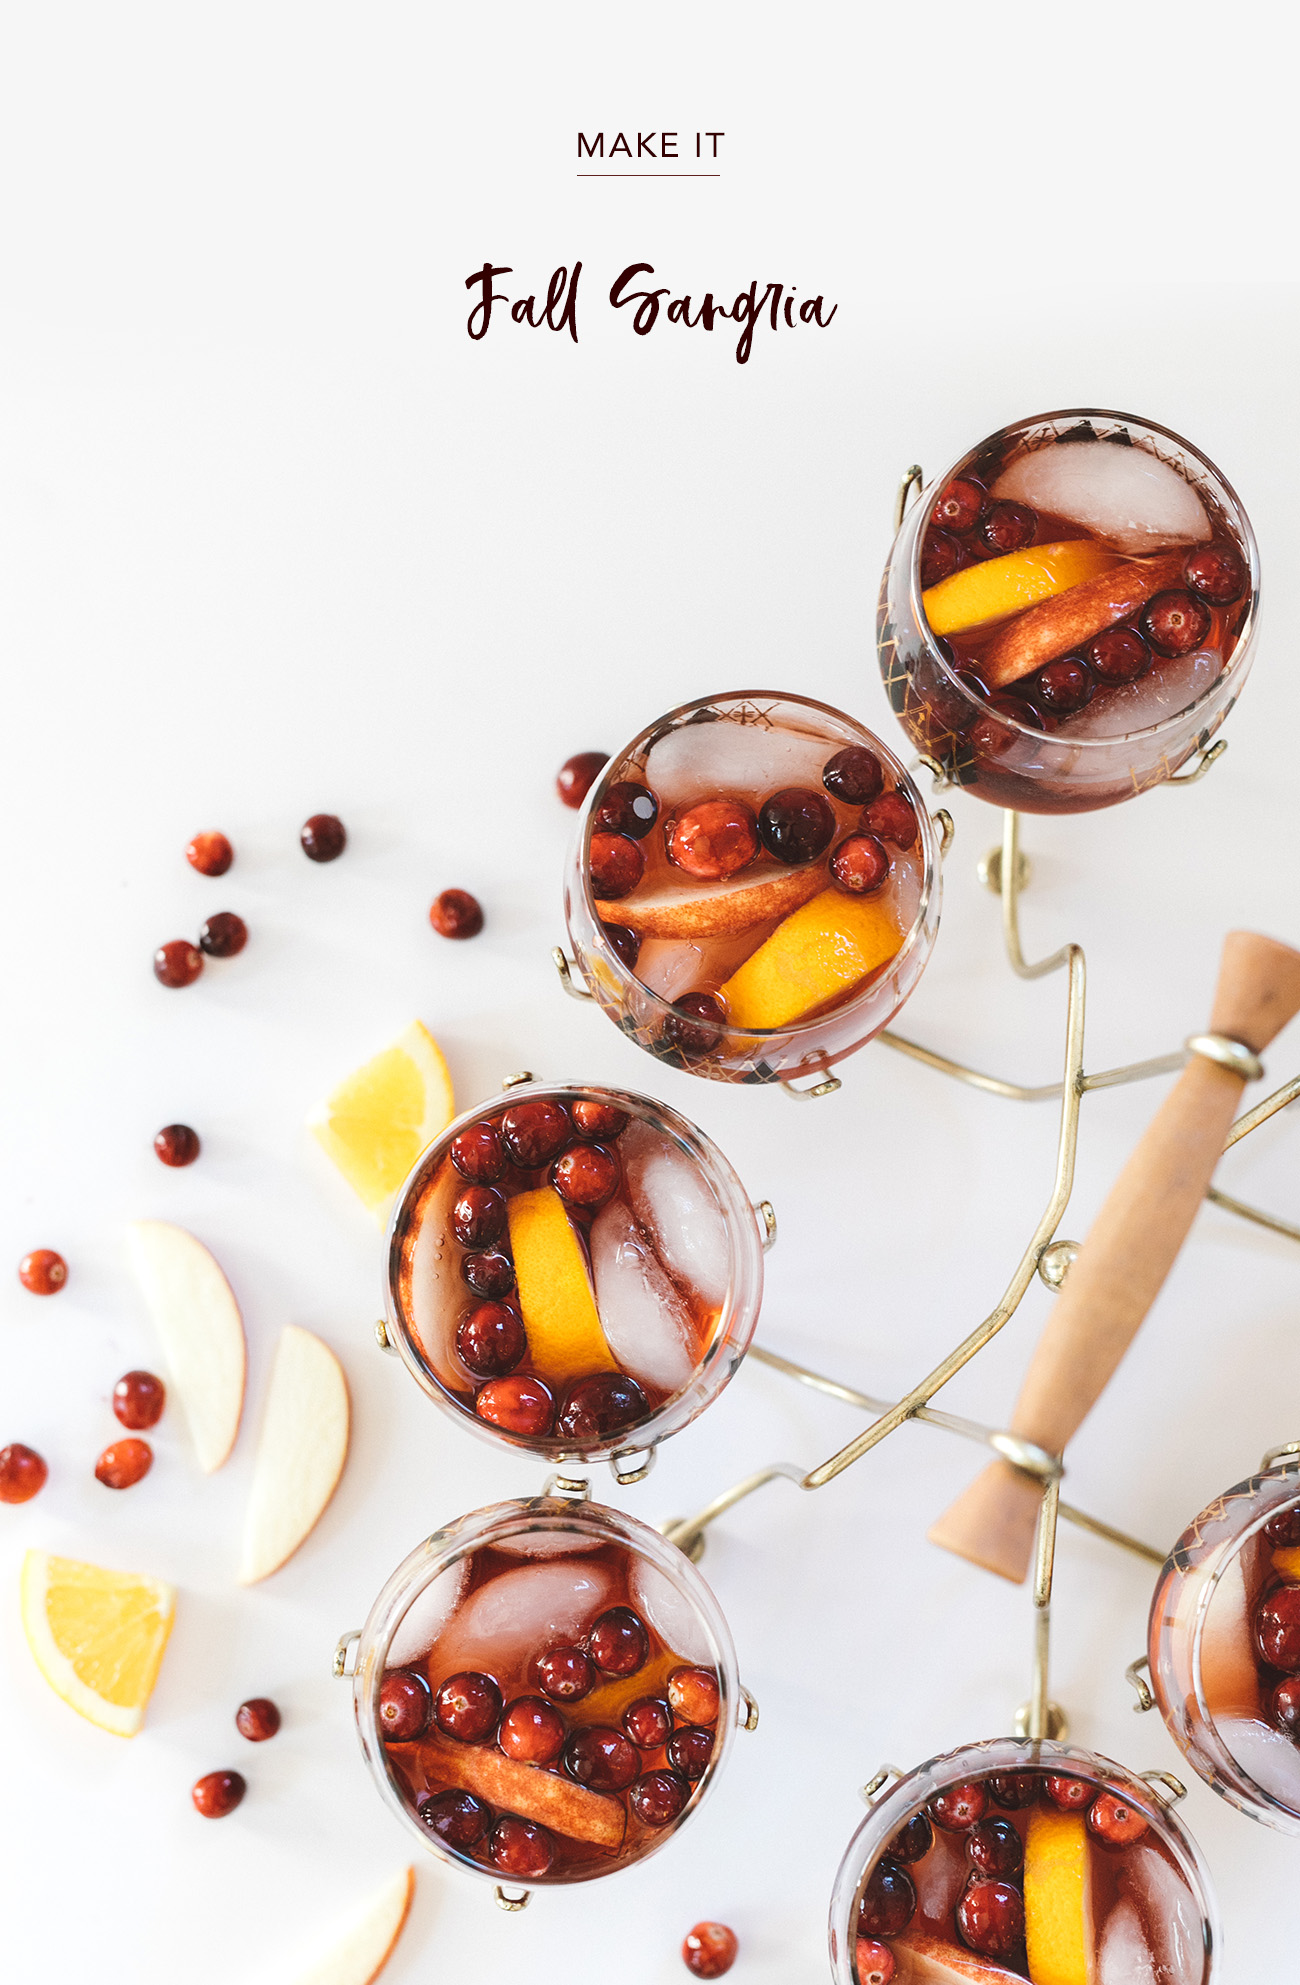 Fall Sangria Recipe